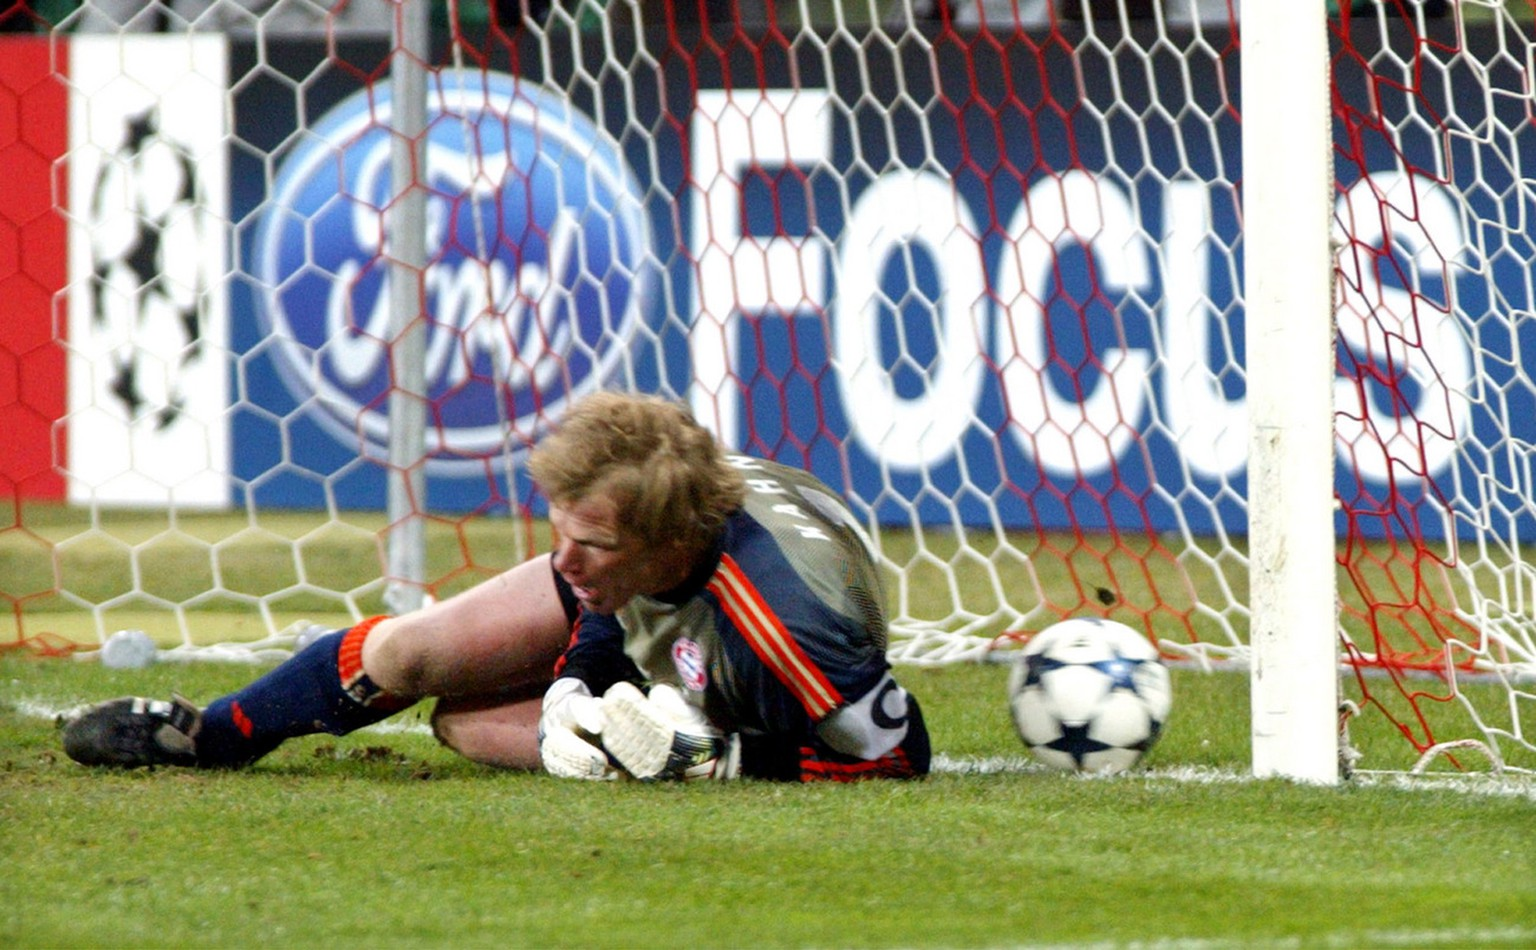 Munich's goalkeeper Oliver Kahn fails to stop a freekick by Real's Roberto Carlos from Brasil during the Champions League 2nd round first leg soccer match between FC Bayern Munich and Real Madrid in Munich, southern Germany, Tuesday, February 24, 2004. The match ended in a 1-1 draw. (KEYSTONE/AP Photo/Uwe Lein)